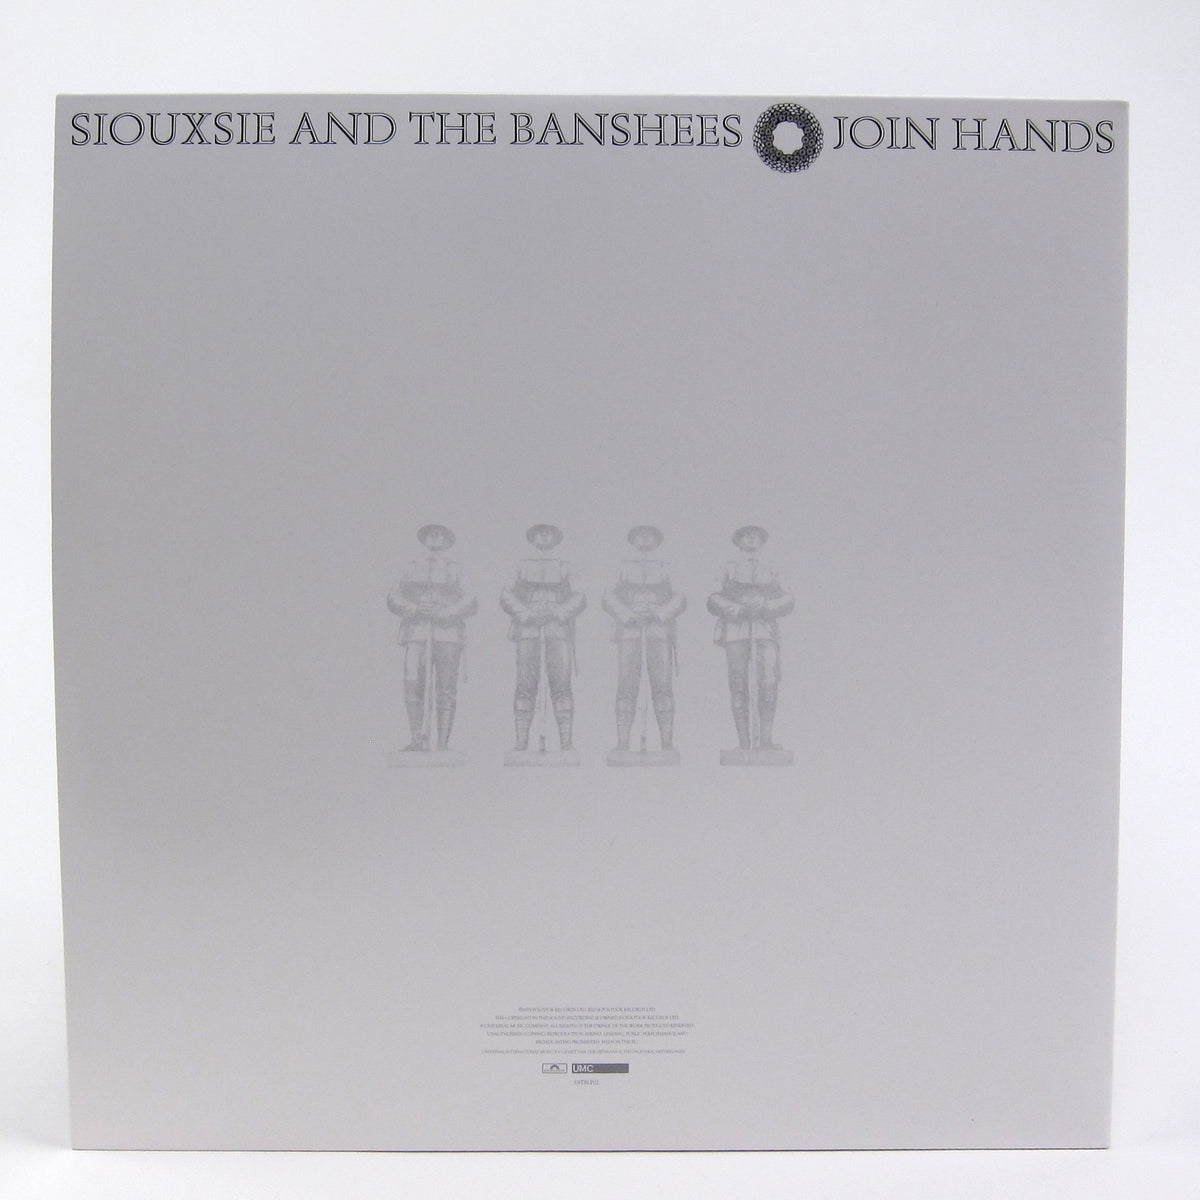 Siouxsie And The Banshees: Join Hands (180g) Vinyl LP